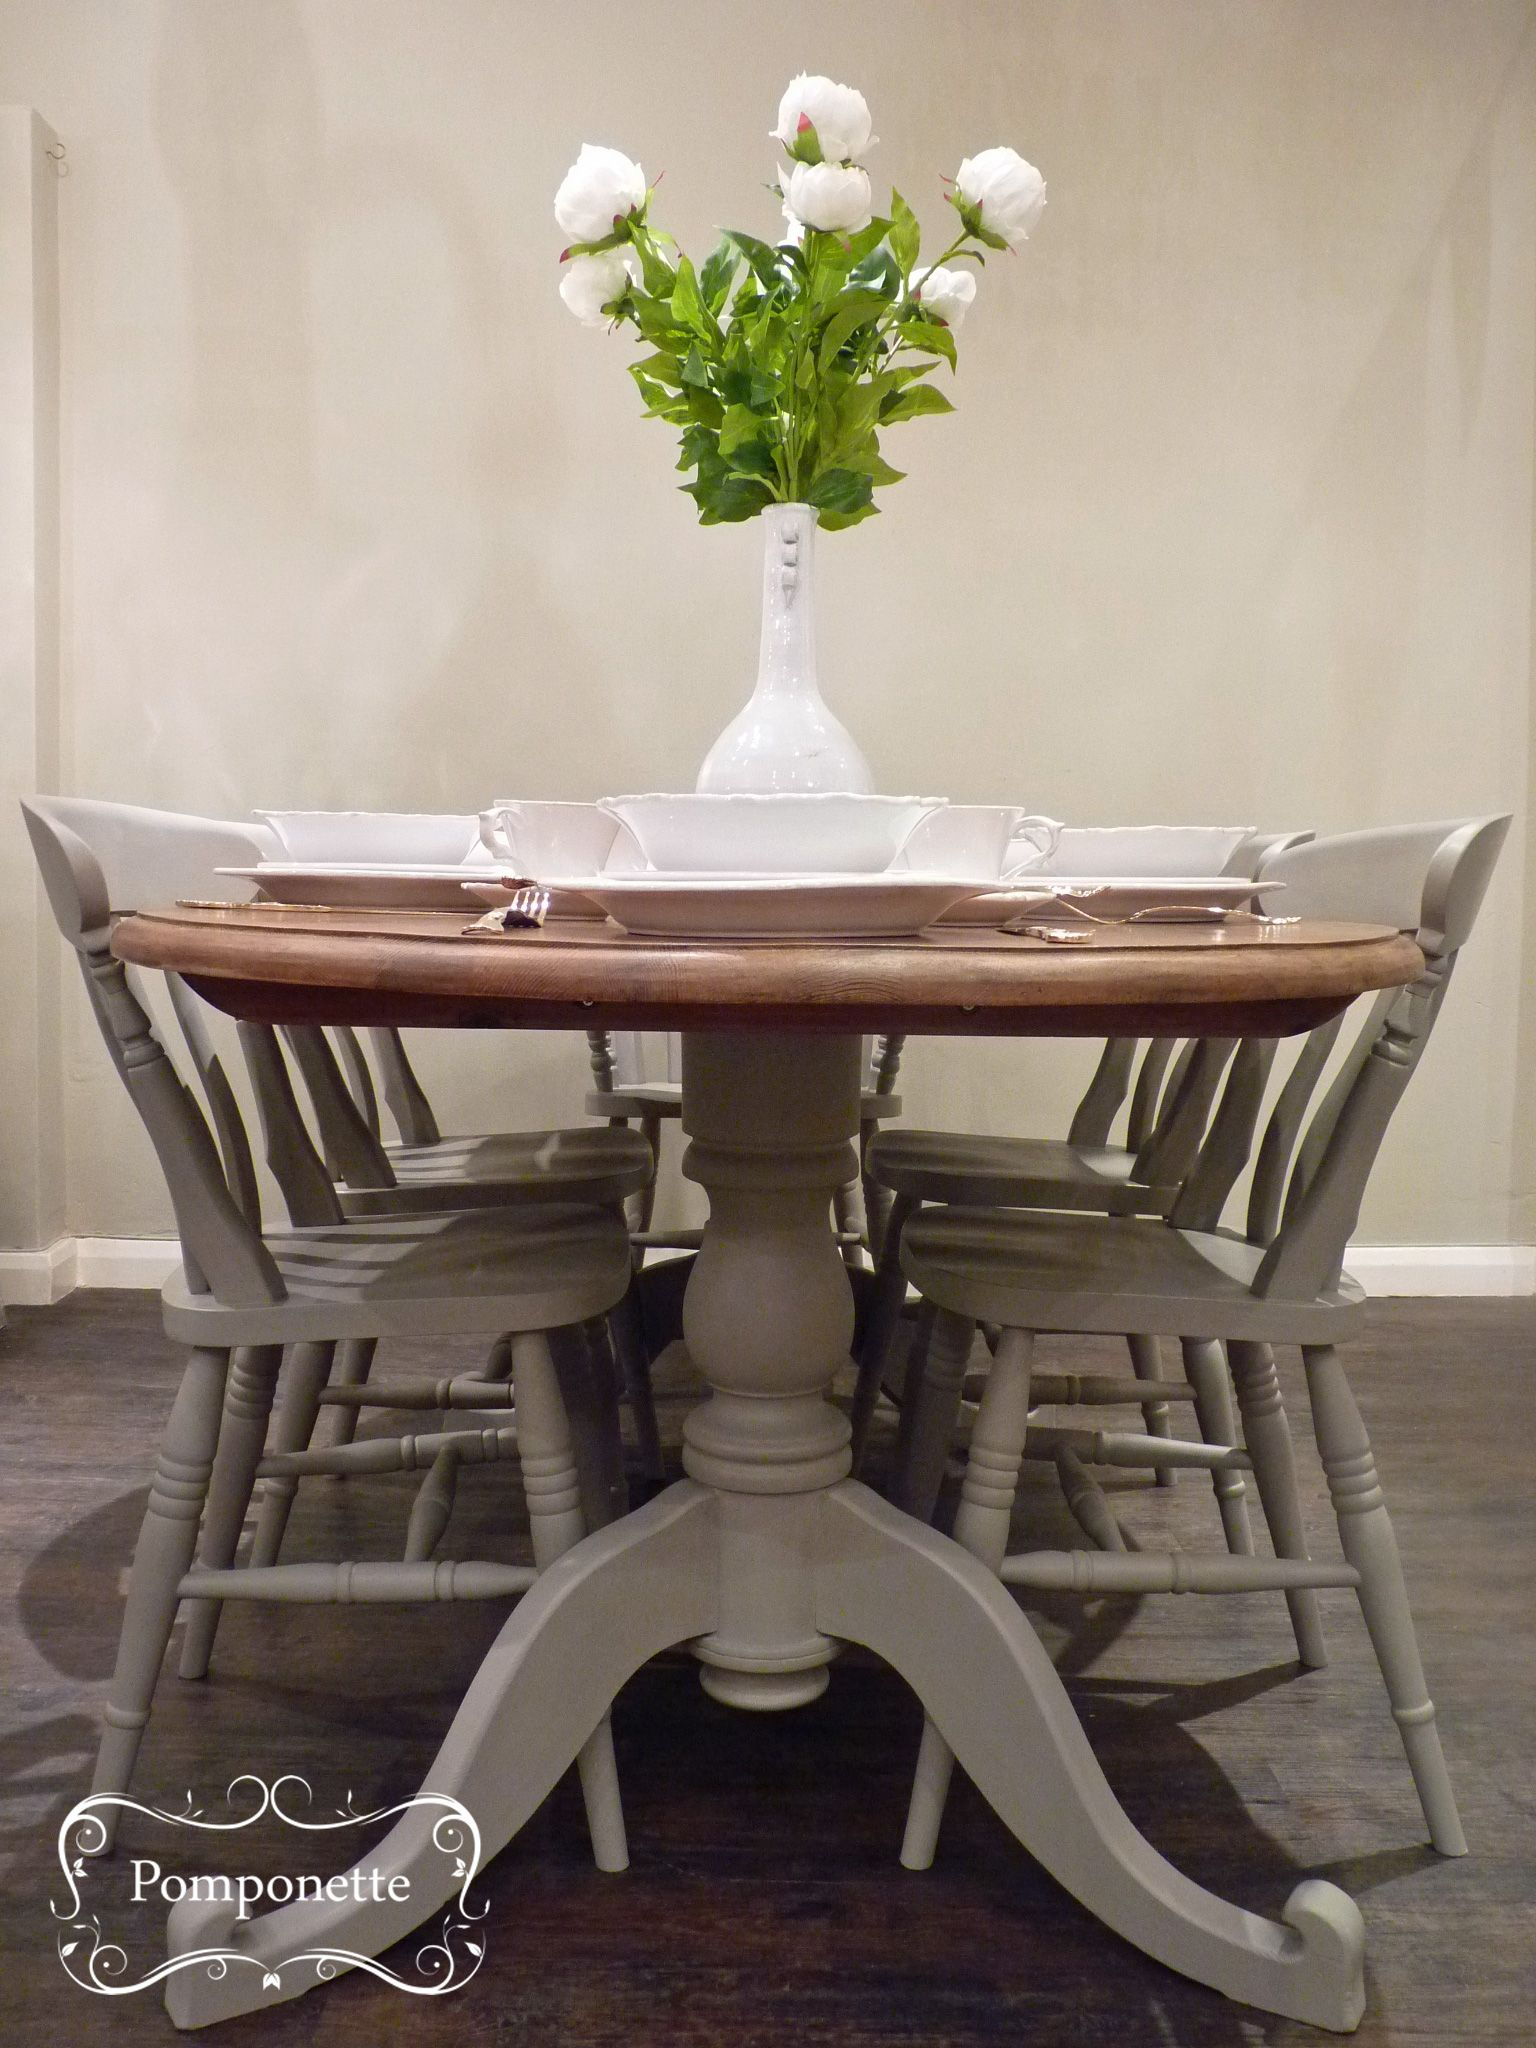 oval kitchen table Oval Dining Table and Six Chairs Pedestal detail anniesloanhome custom mix to create